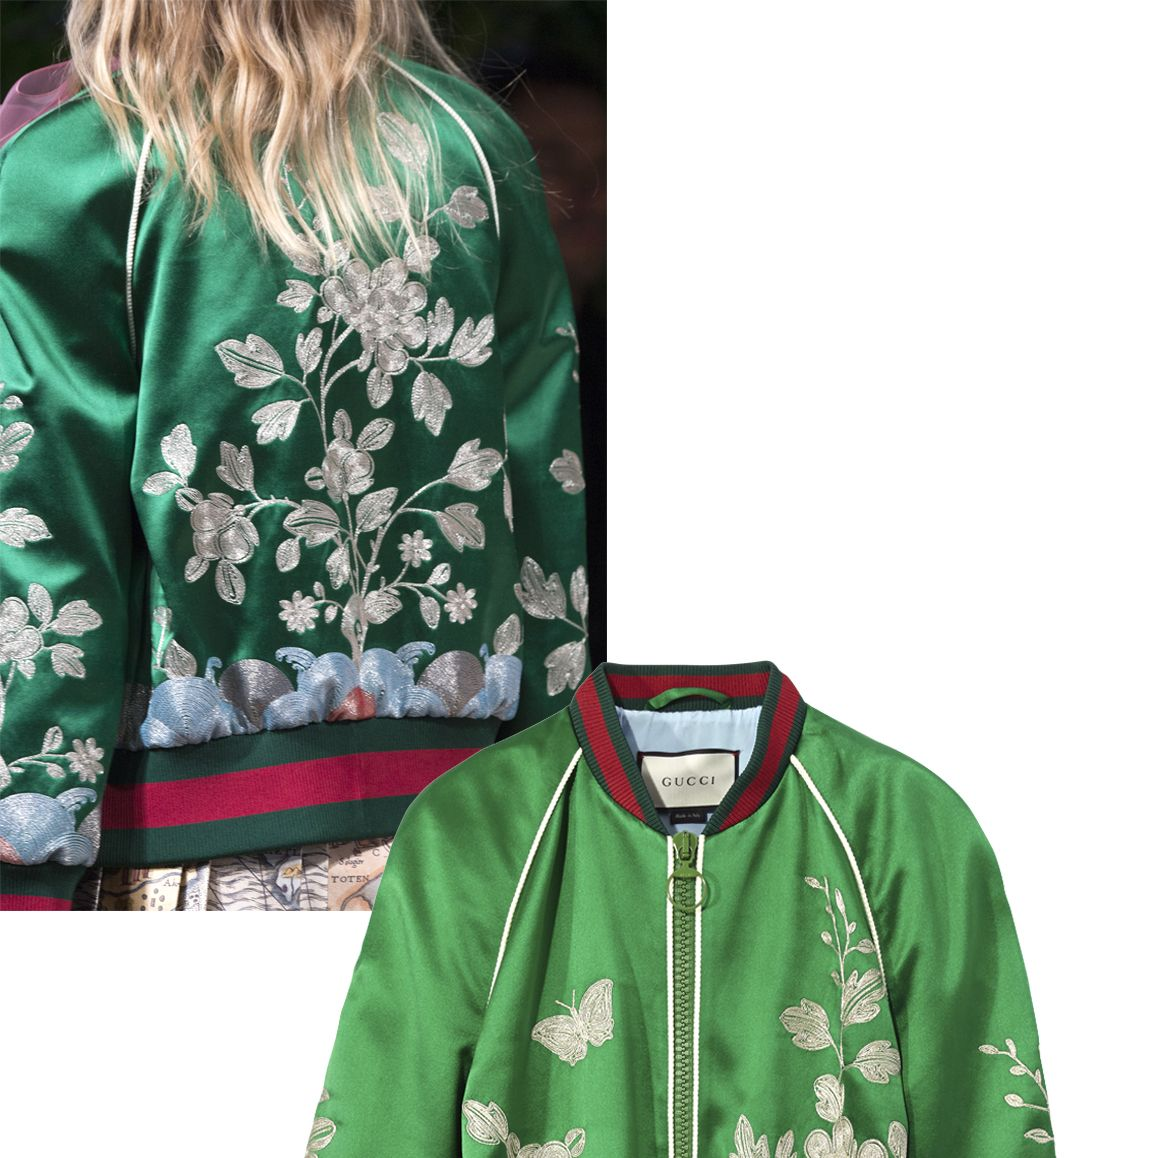 "<p>""The bomber is the only piece of outerwear you need for spring and this Gucci is the ultimate—you really can't get better than this.""</p><p><em><strong>Gucci</strong> bomber, $3,500, <a href=""https://shop.harpersbazaar.com/designers/g/gucci/silk-garden-duchess-bomber-jacket-8014.html"" target=""_blank""><strong>shopBAZAAR.com</strong></a></em><em>.</em><br></p>"